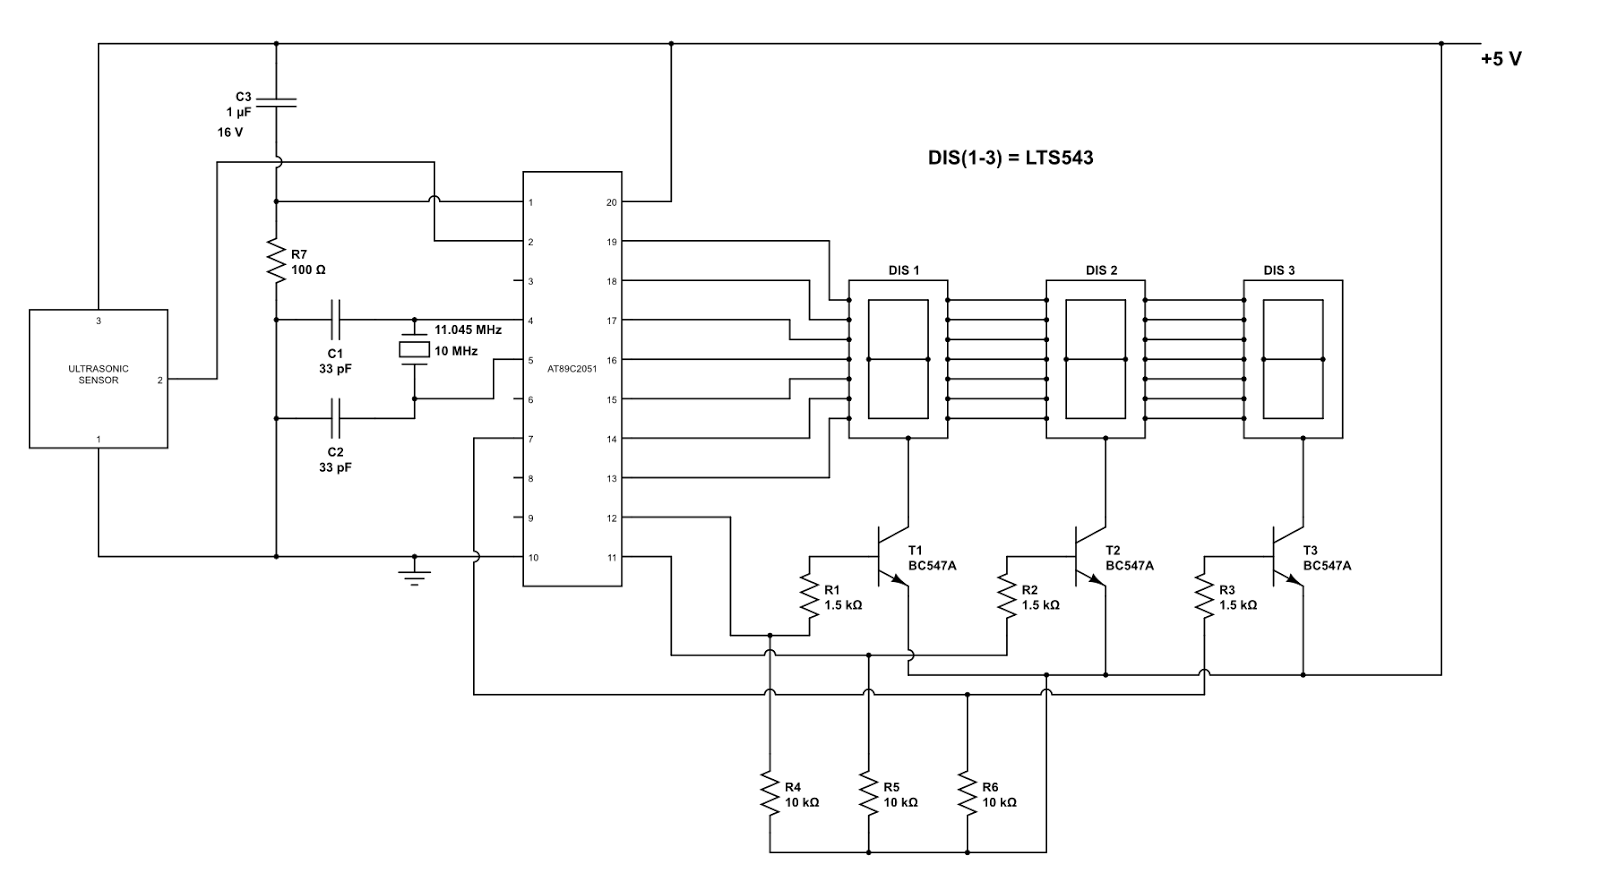 Led Display Using 8051 Microcontroller Outdoor Wiring Diagram Images Of